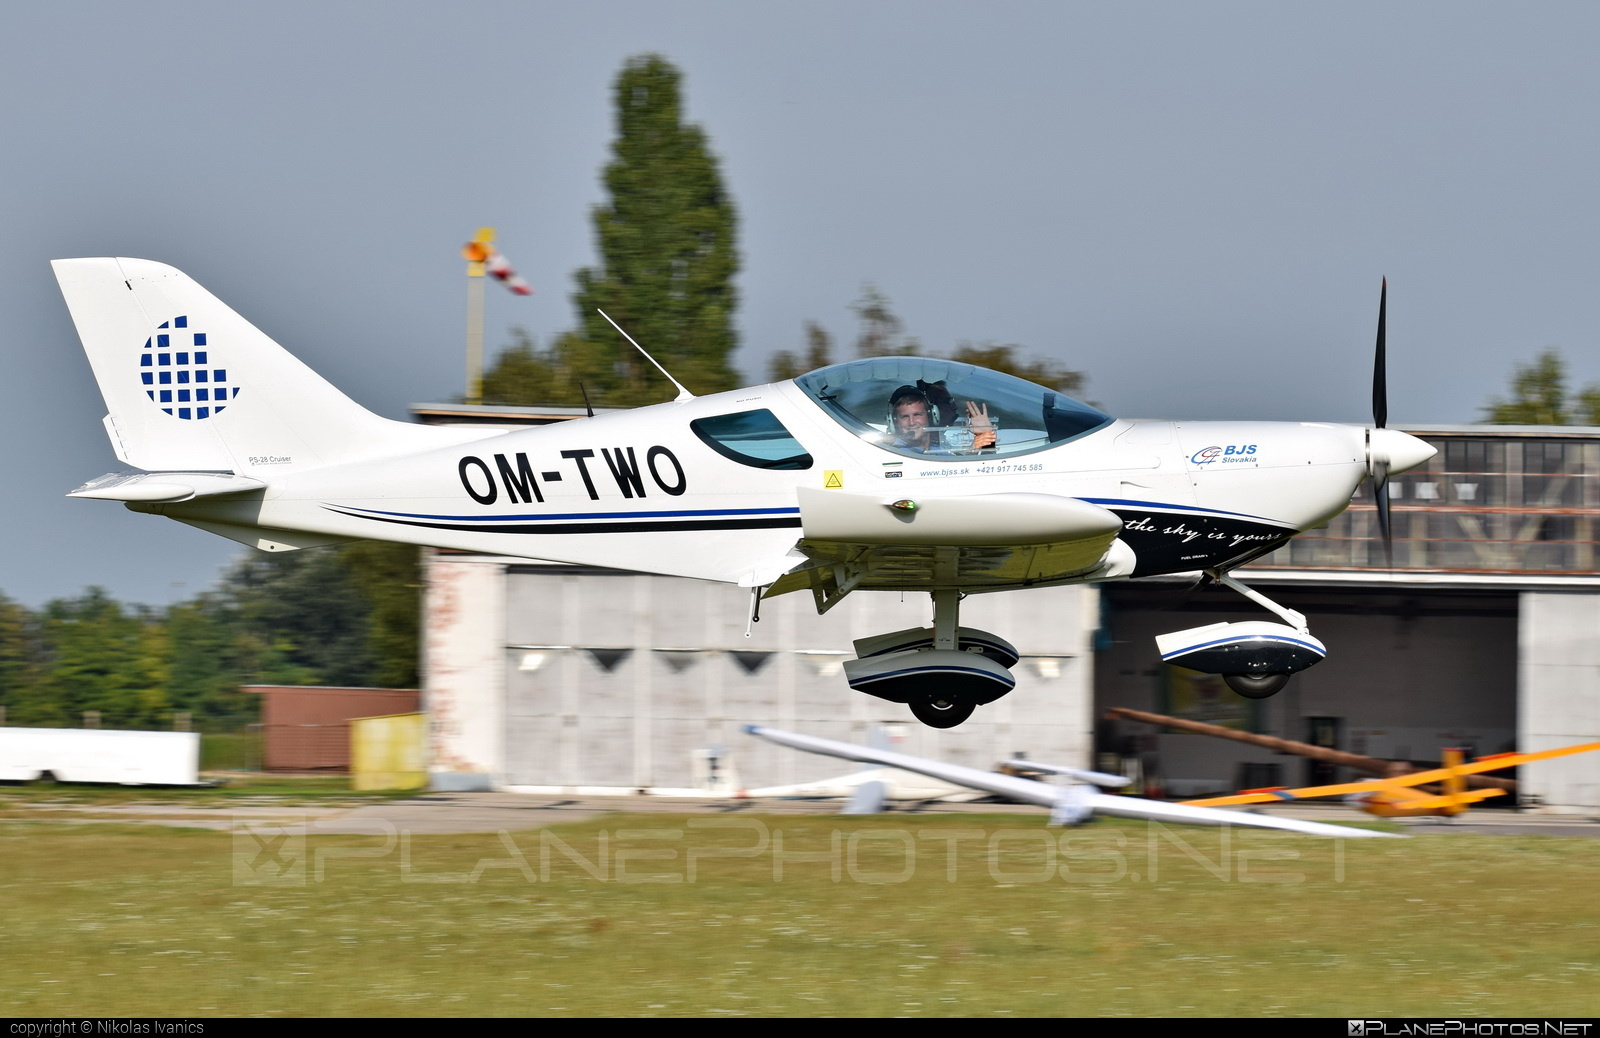 Czech Sport Aircraft PS-28 Cruiser - OM-TWO operated by SKY SERVICE s.r.o. #czechsportaircraft #ps28 #ps28cruiser